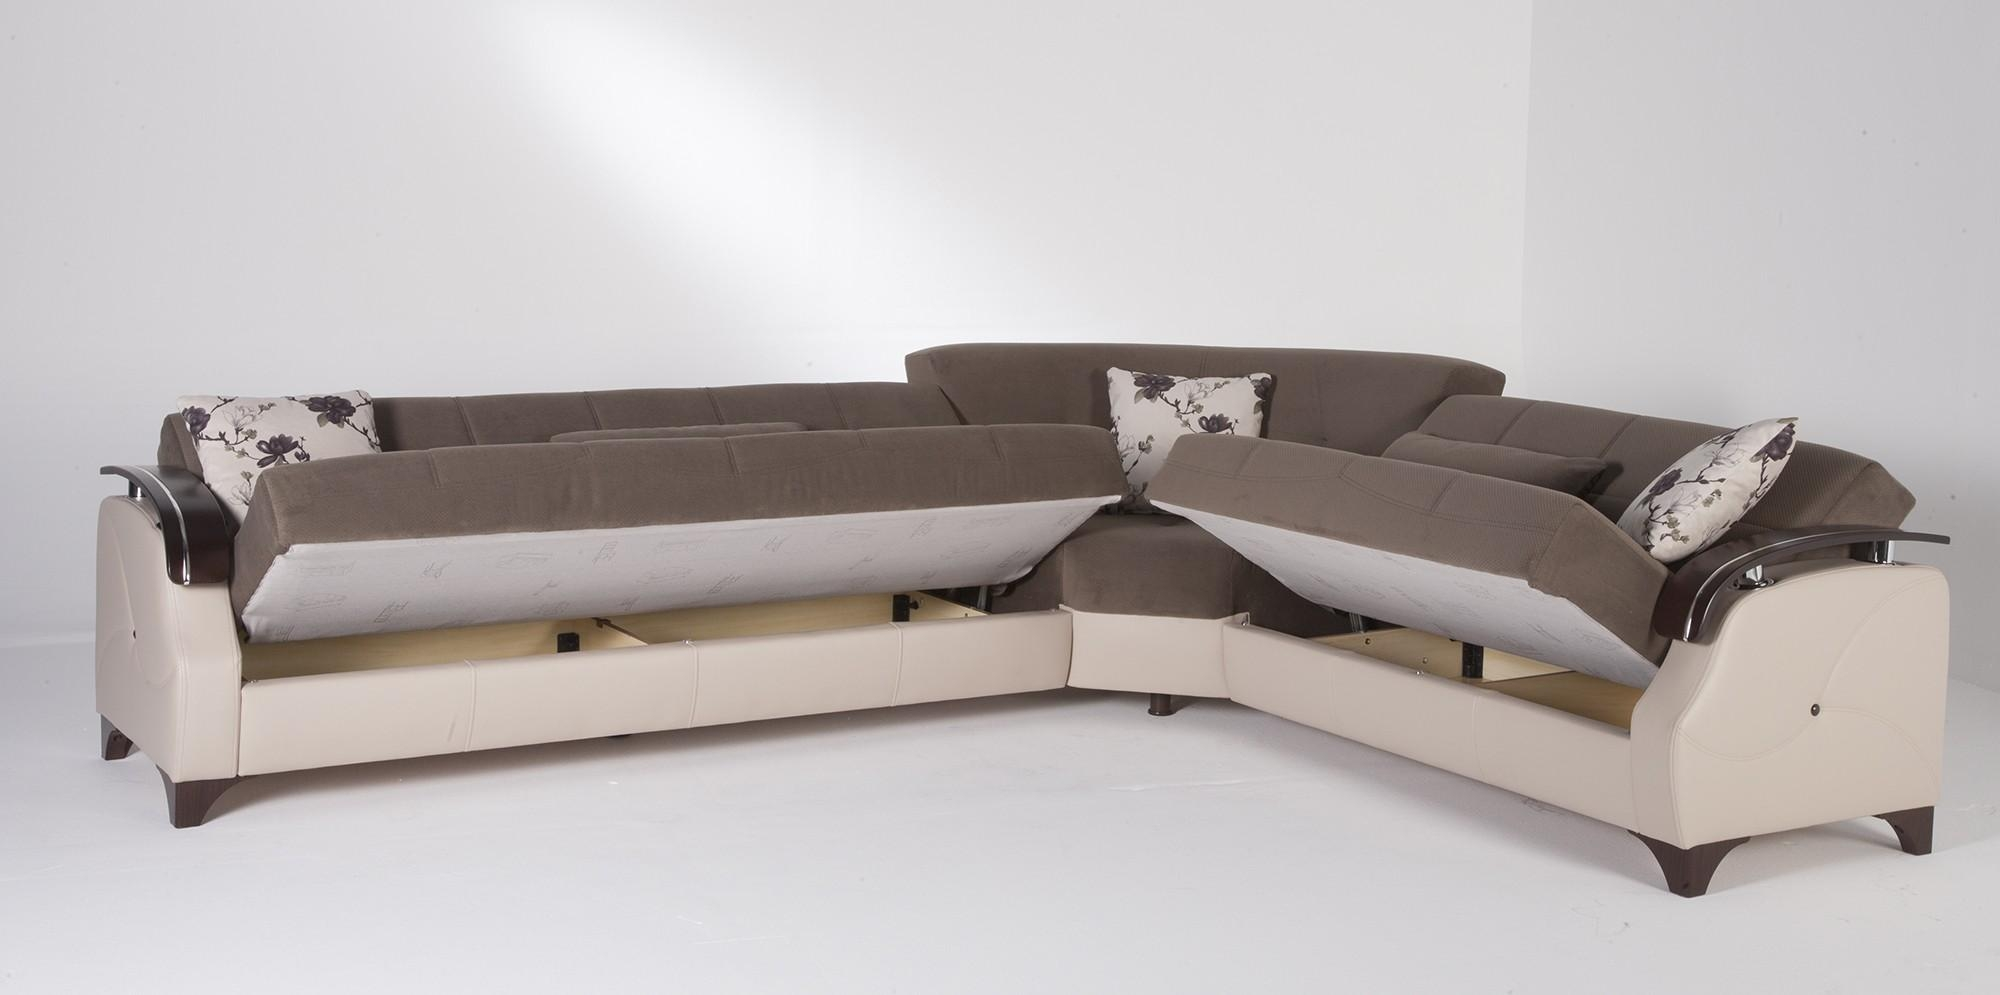 Sleeper Sofa Sectional With Chaise – S3Net – Sectional Sofas Sale With Regard To Corner Sleeper Sofas (Image 14 of 20)